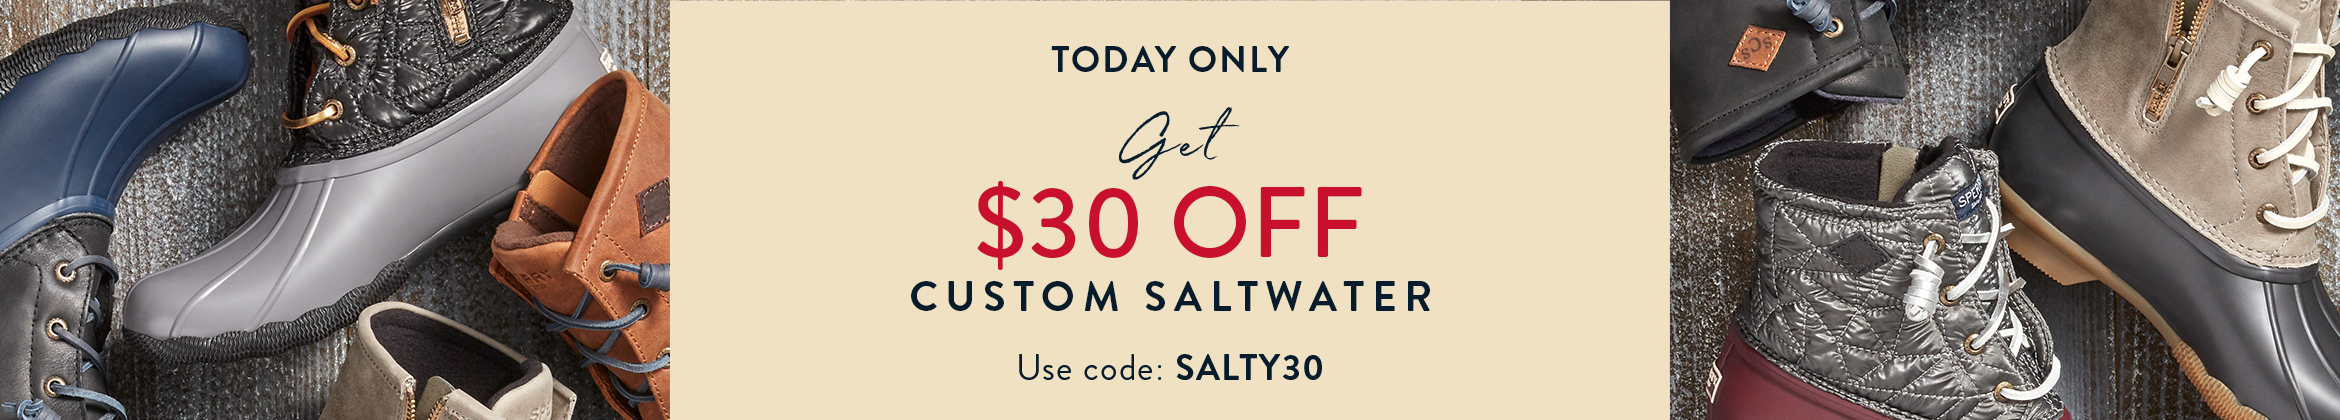 Today only: Get $30 Off Custom Saltwater Boots. Use Code: SALTY30